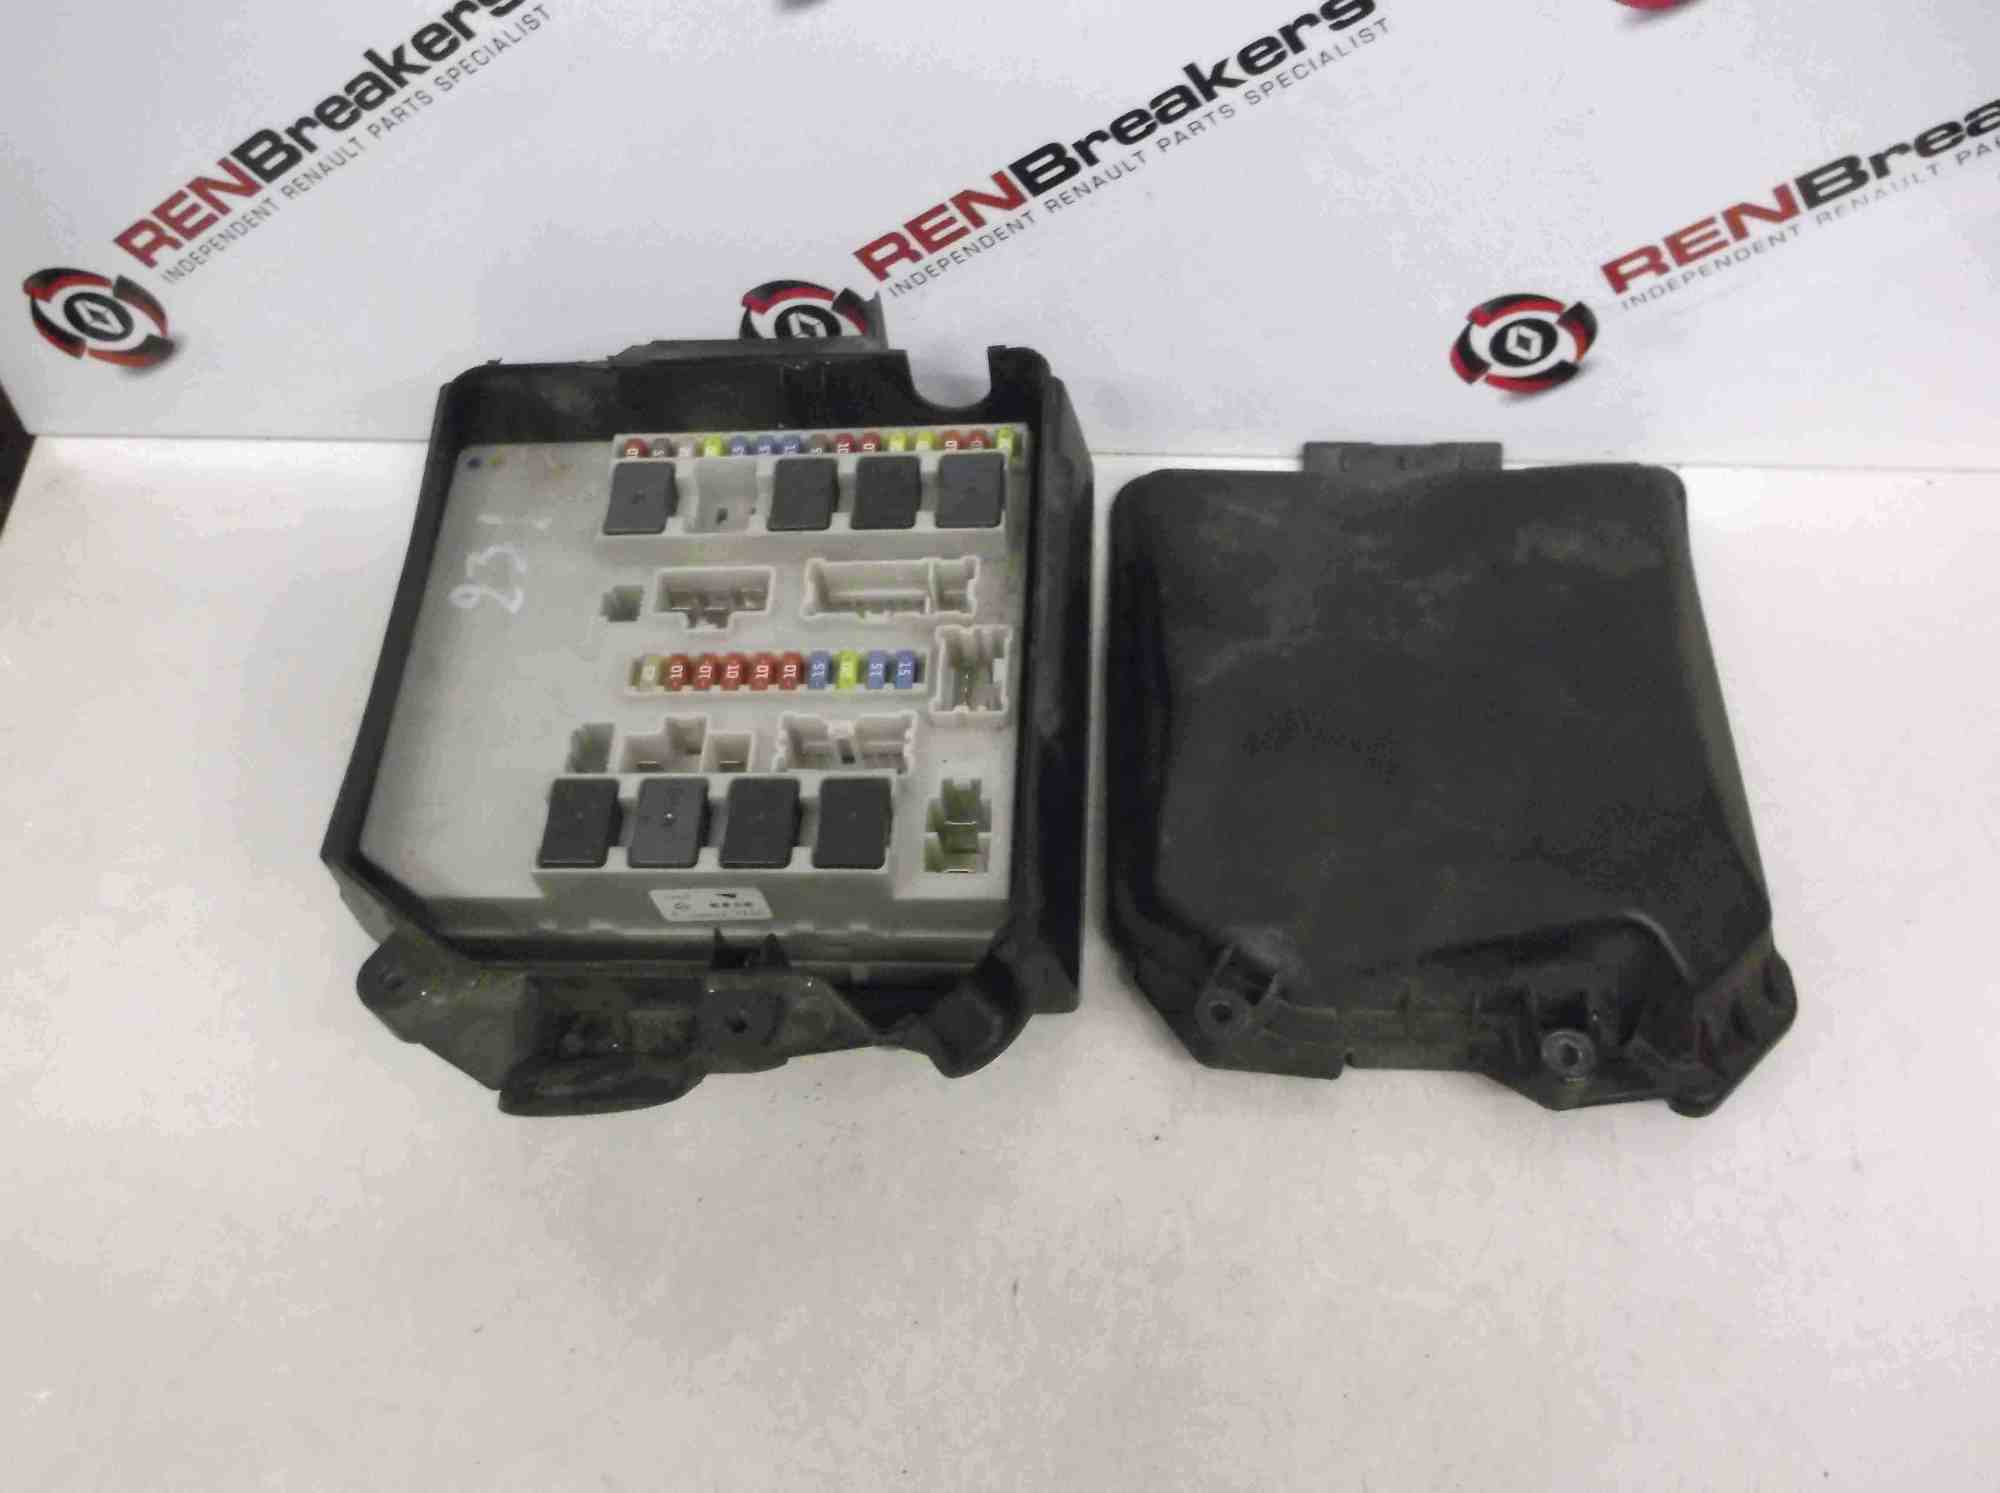 hight resolution of renault clio mk3 modus 2005 2012 engine bay fuse box relay upc 1988 honda prelude fuse box location renault clio relay fuse box